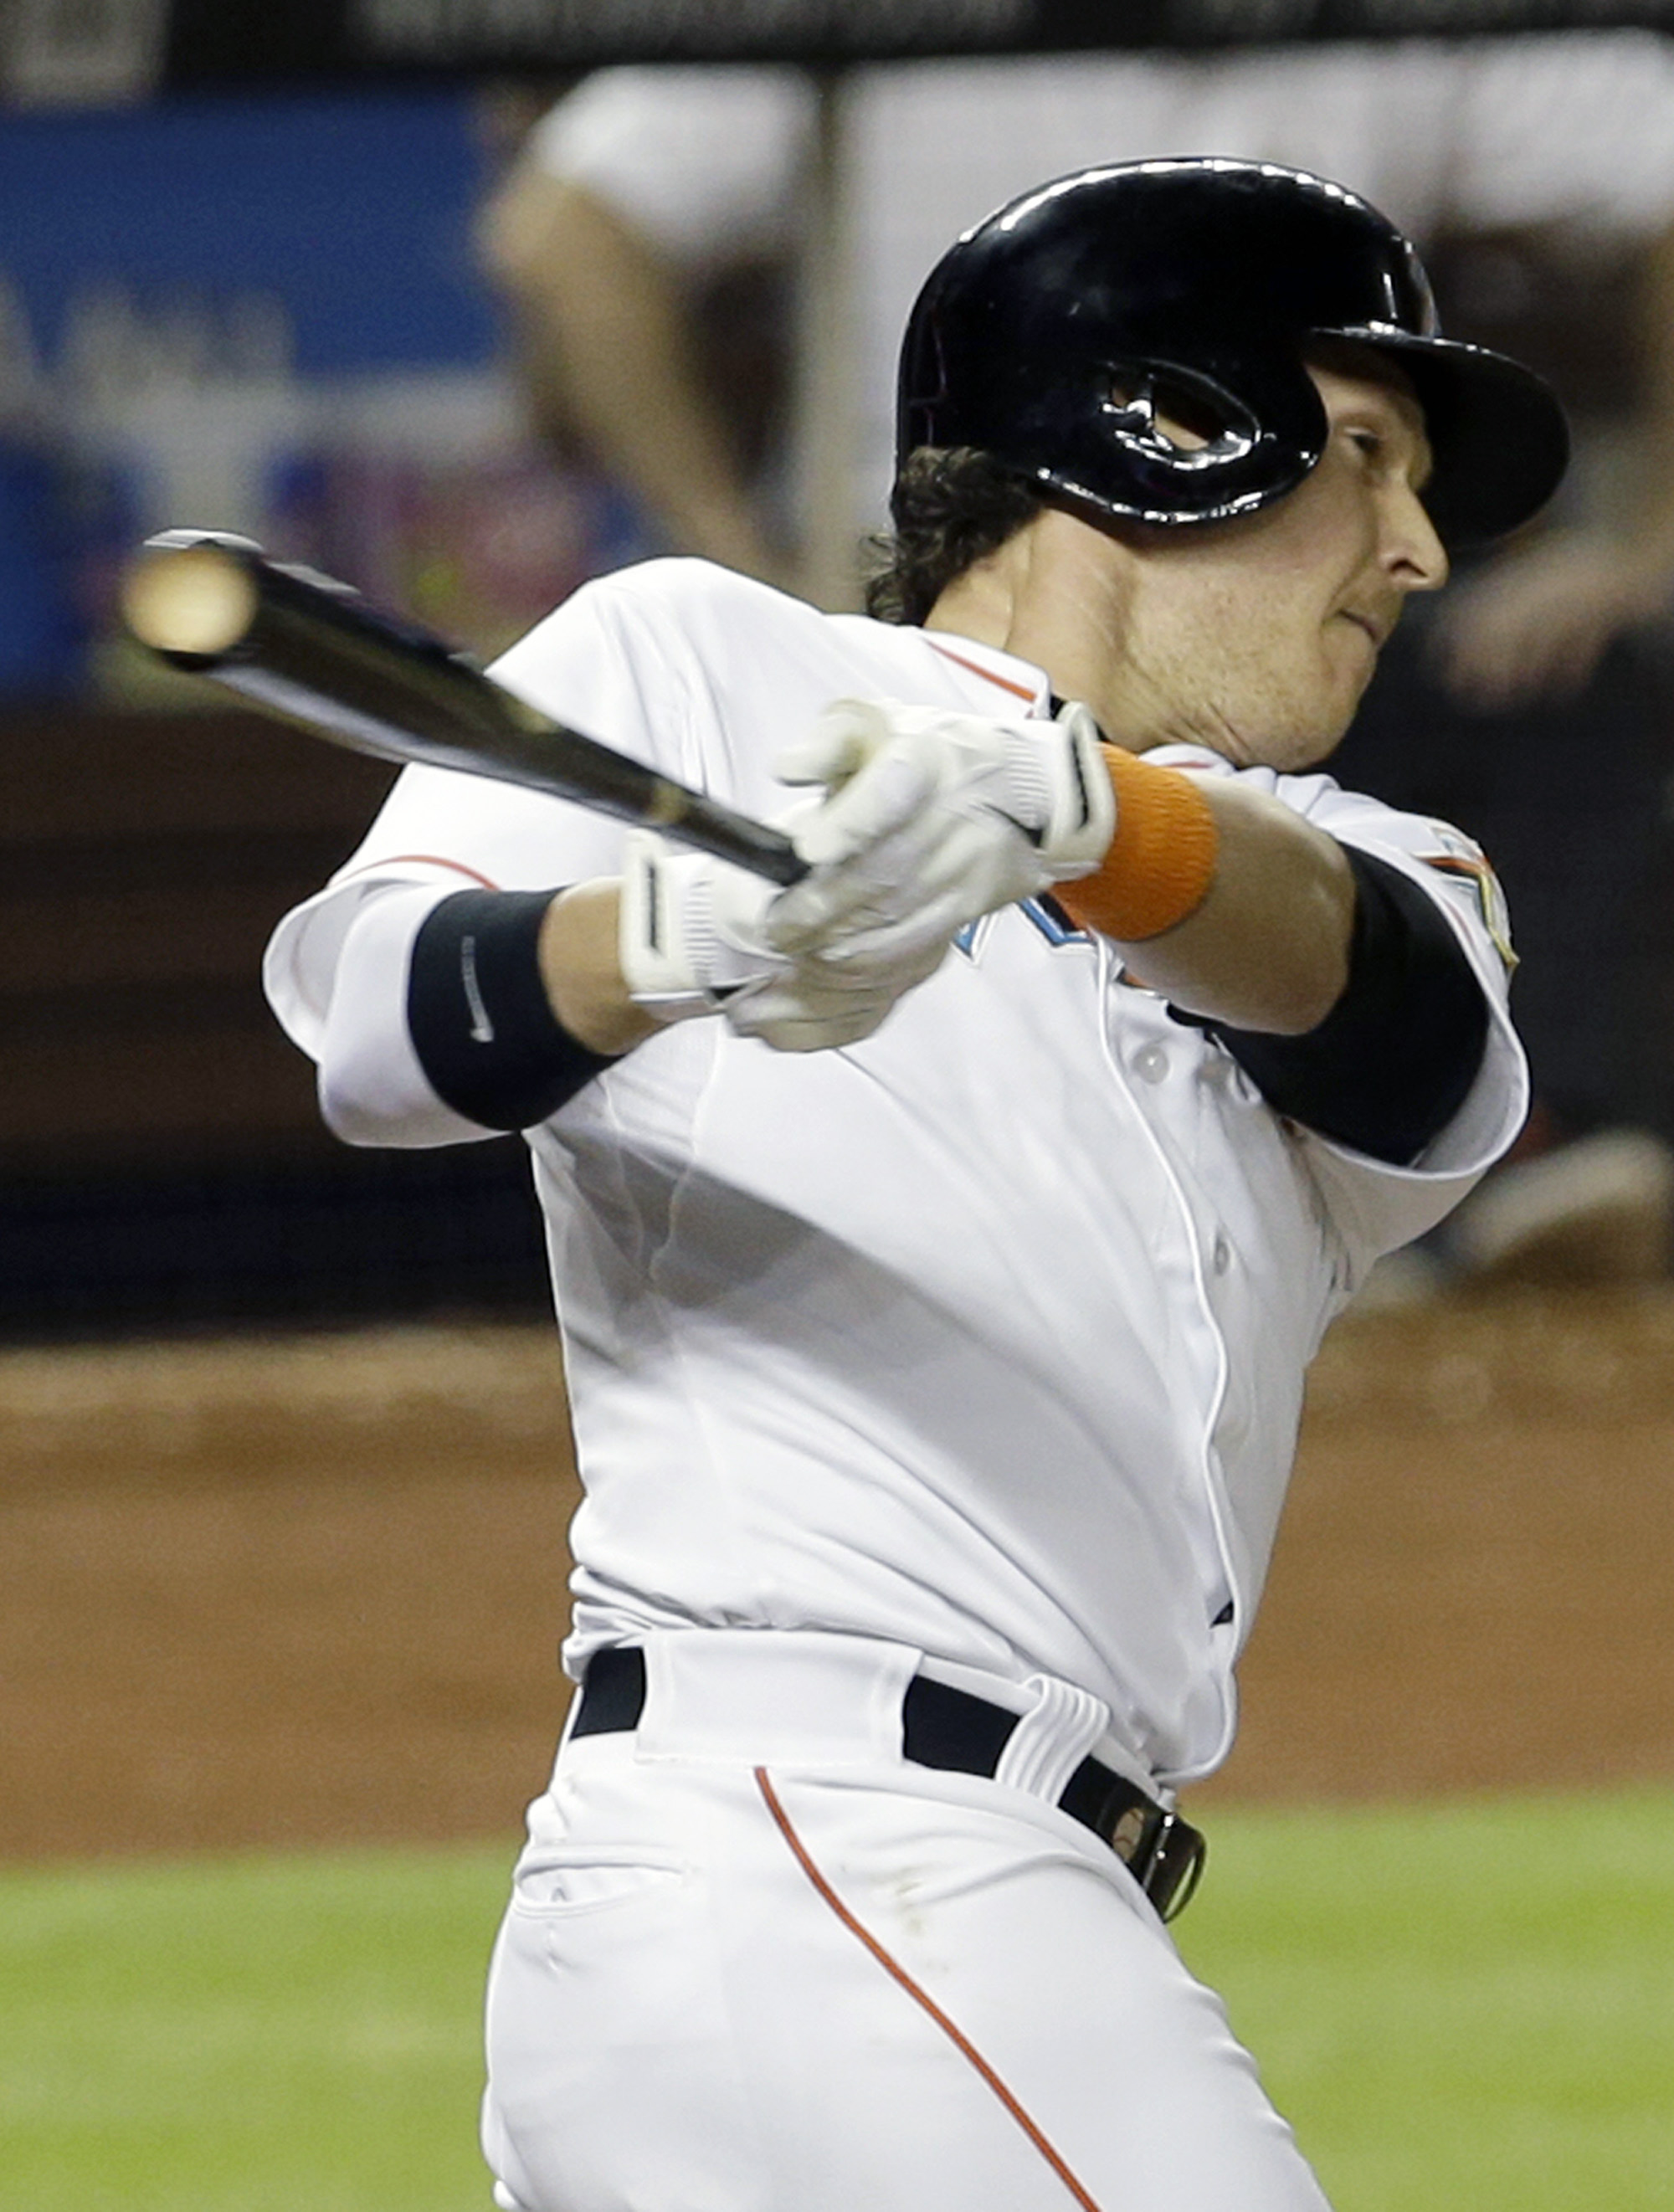 Marlins rally past Tigers 2-1 in 10 innings